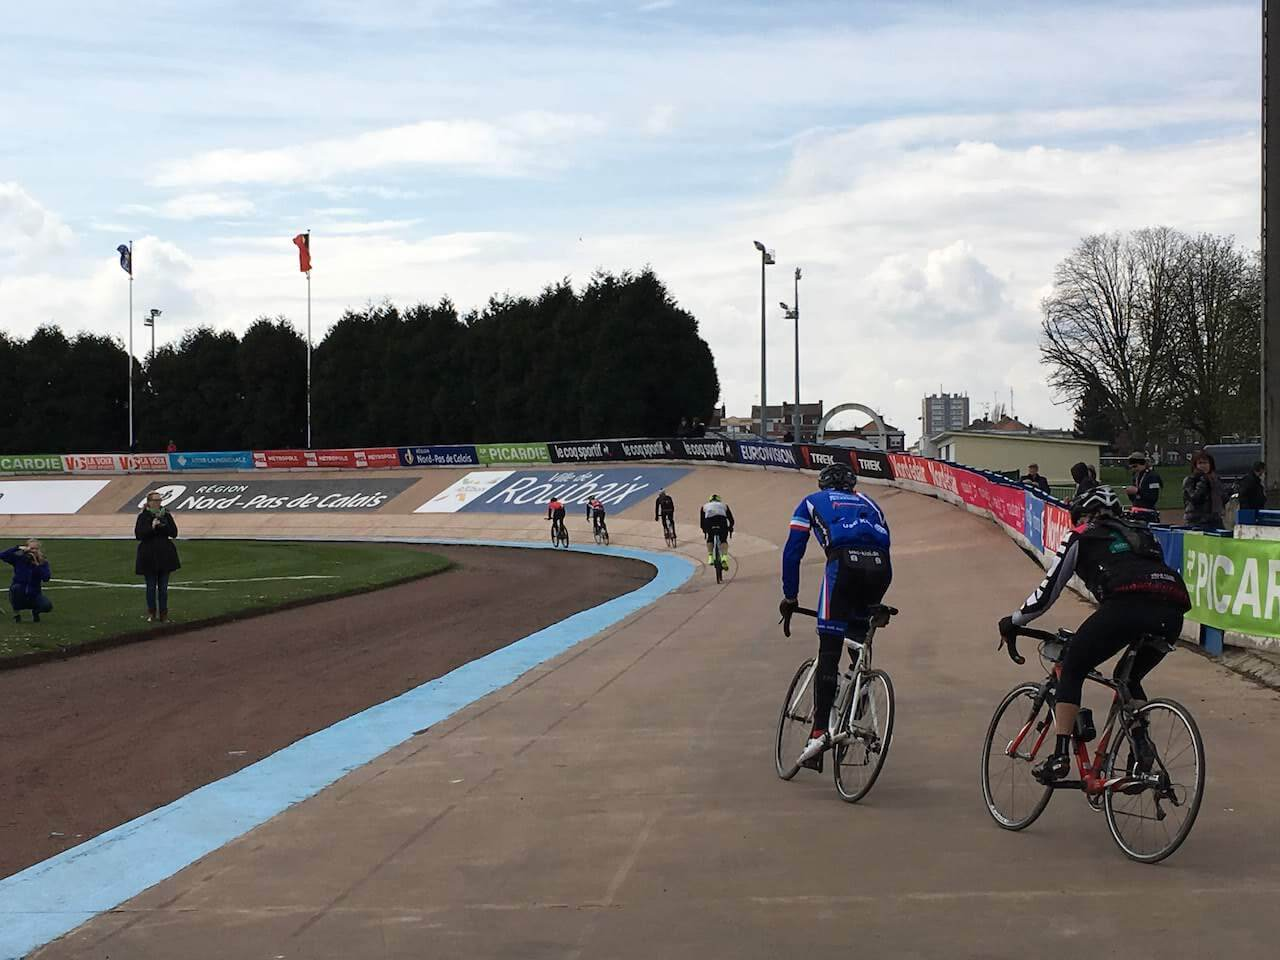 a shot of the Velodrome